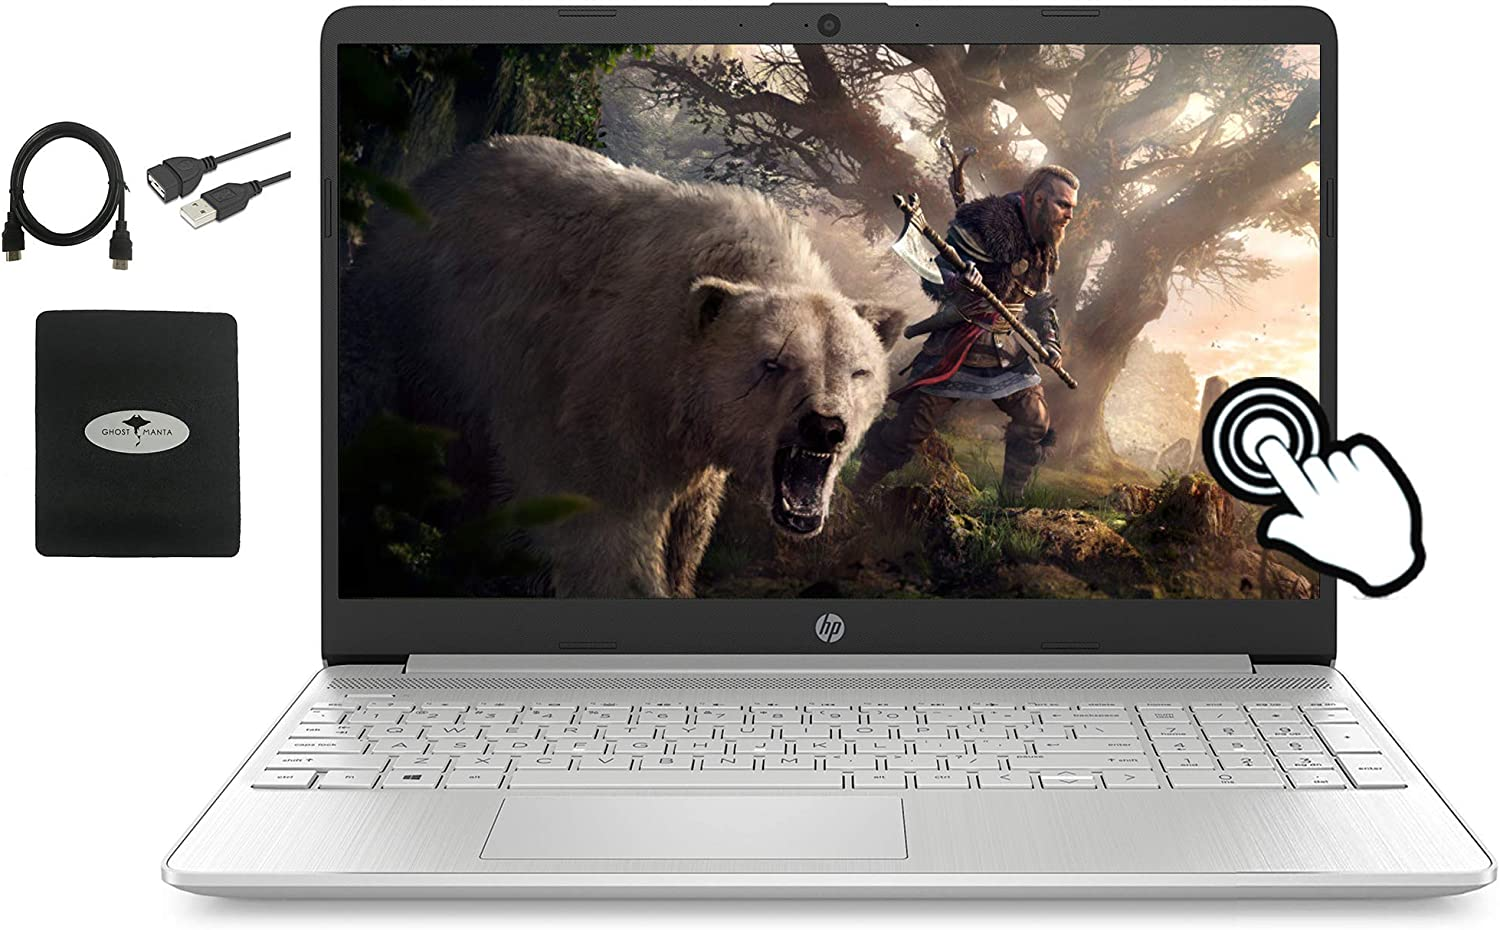 2021 Newest HP 15.6 FHD IPS Touchscreen Laptop,10th Gen Intel Quad-Core i5-1035G1 (Up to 3.60GHz, Beat i7-8550U), 16GB RAM, 512GB SSD, Fast charge, Webcam, HDMI, Wifi, Win10, w/Ghost Manta Accessories